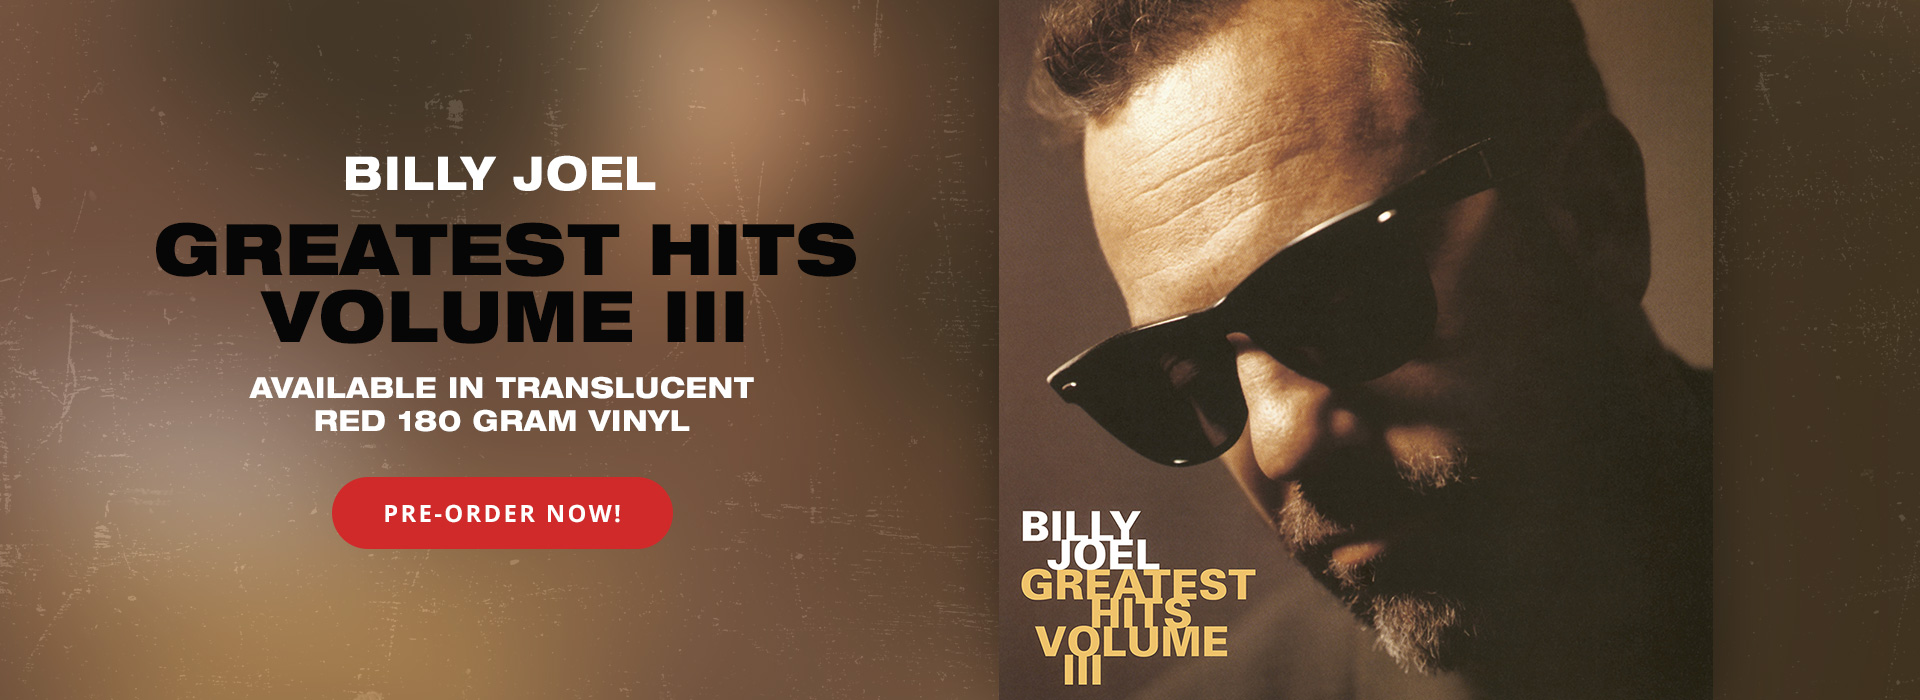 Billy Joel | Greatest Hits Volume III